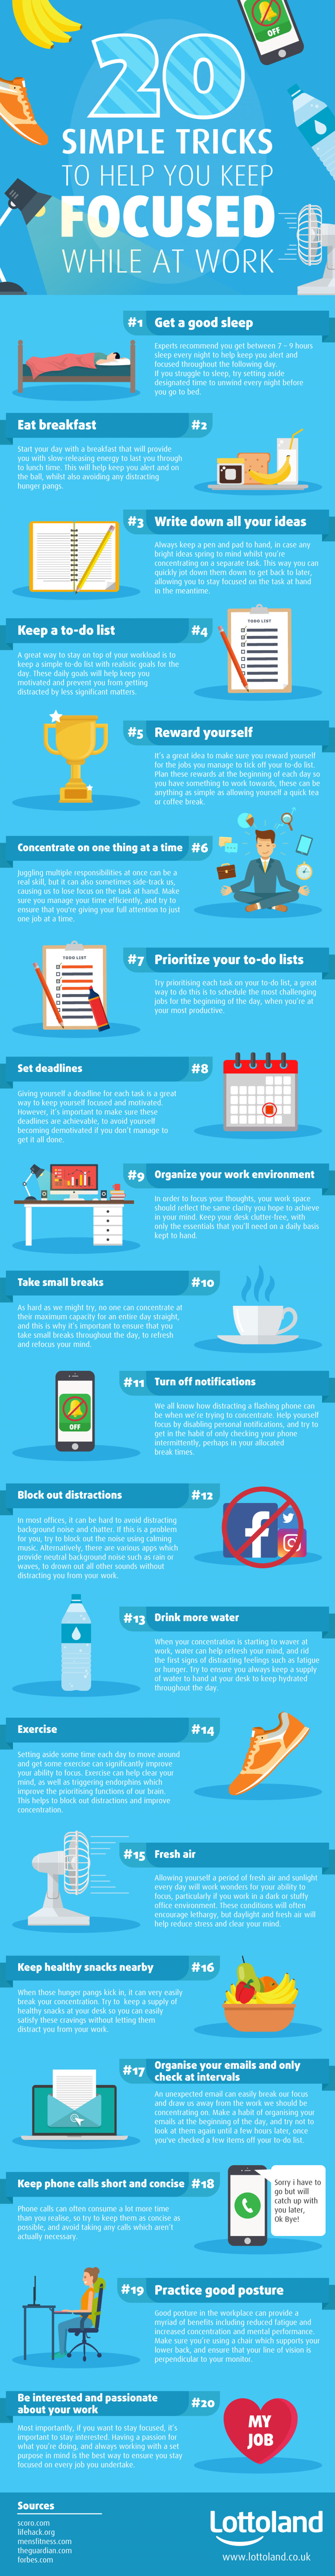 20-simple-tricks-to-help-keep-you-focused-at-work_599c01760a85c_w1500.png